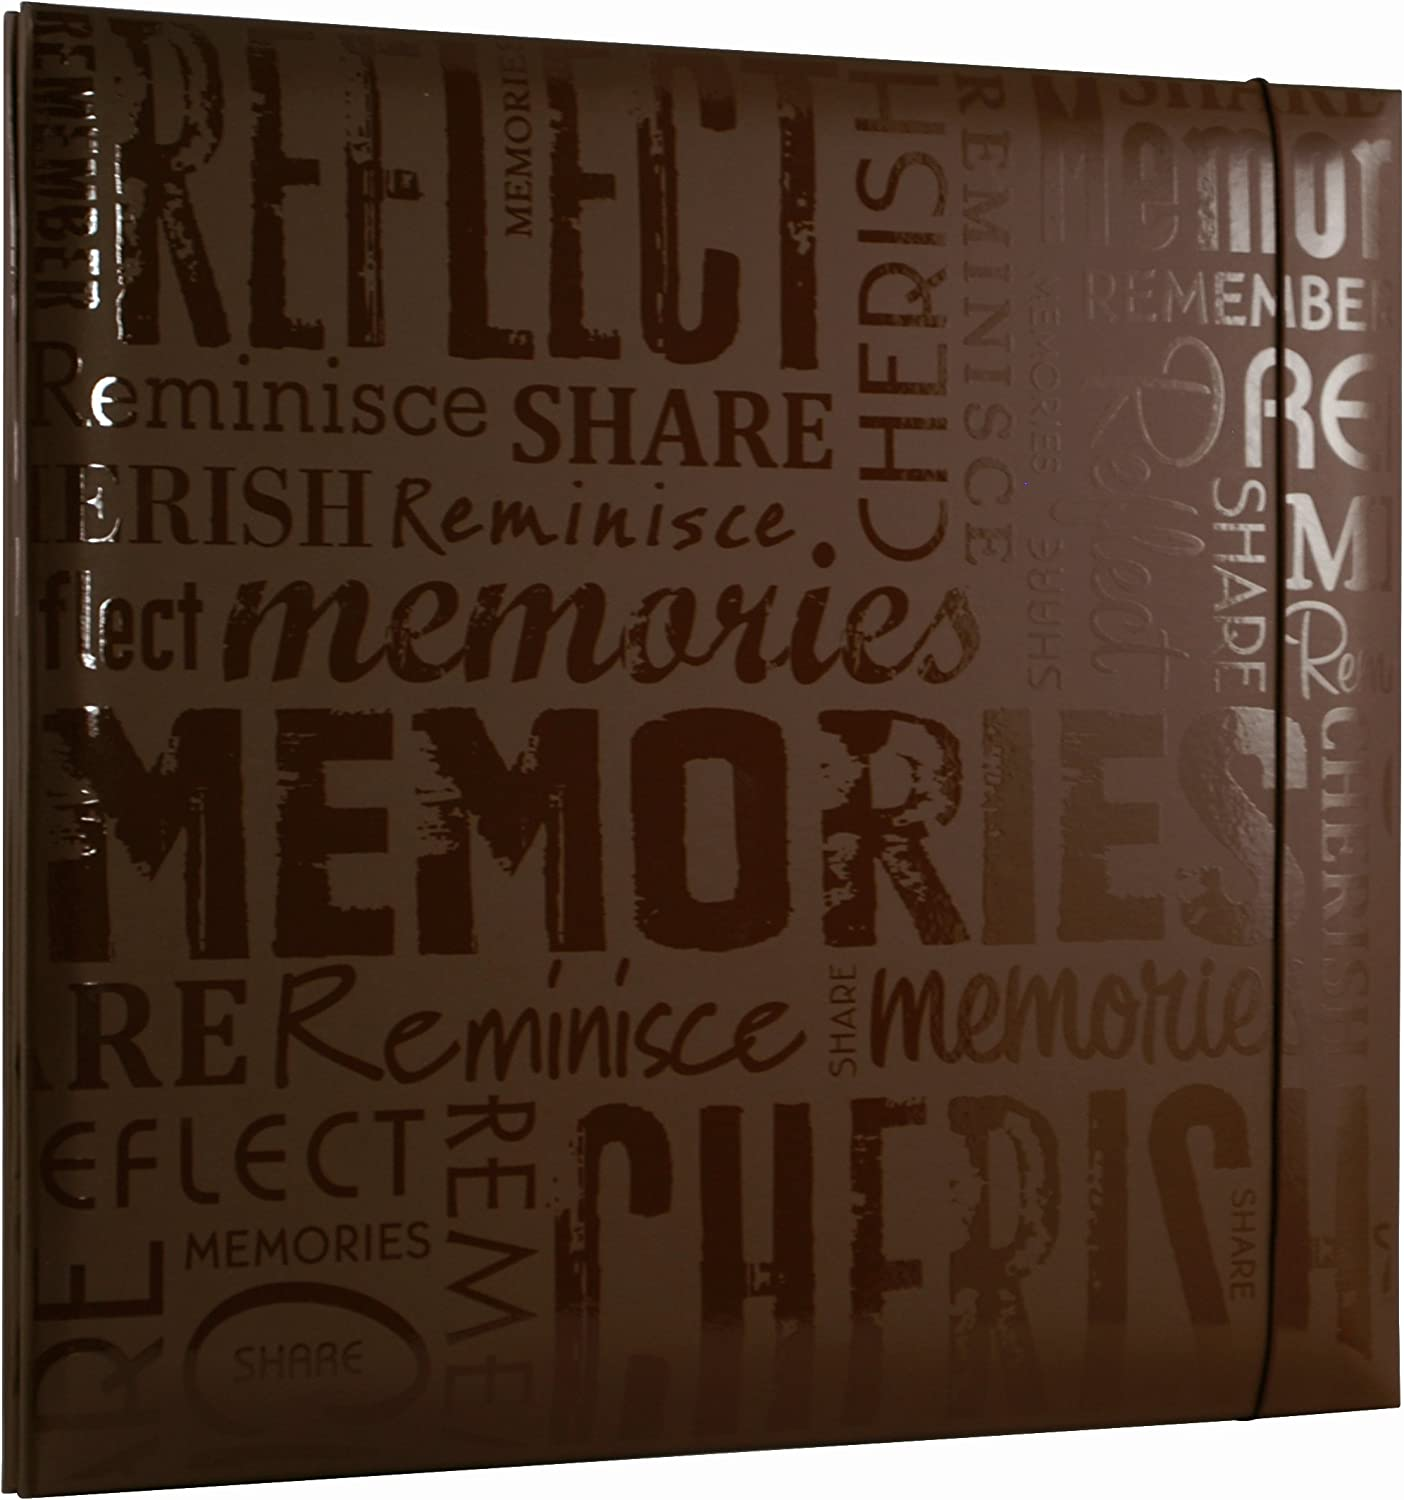 Embossed Memories Brown 848122 MCS MBI 13.5x12.5 Inch Embossed Gloss Expressions Scrapbook Album with 12x12 Inch Pages